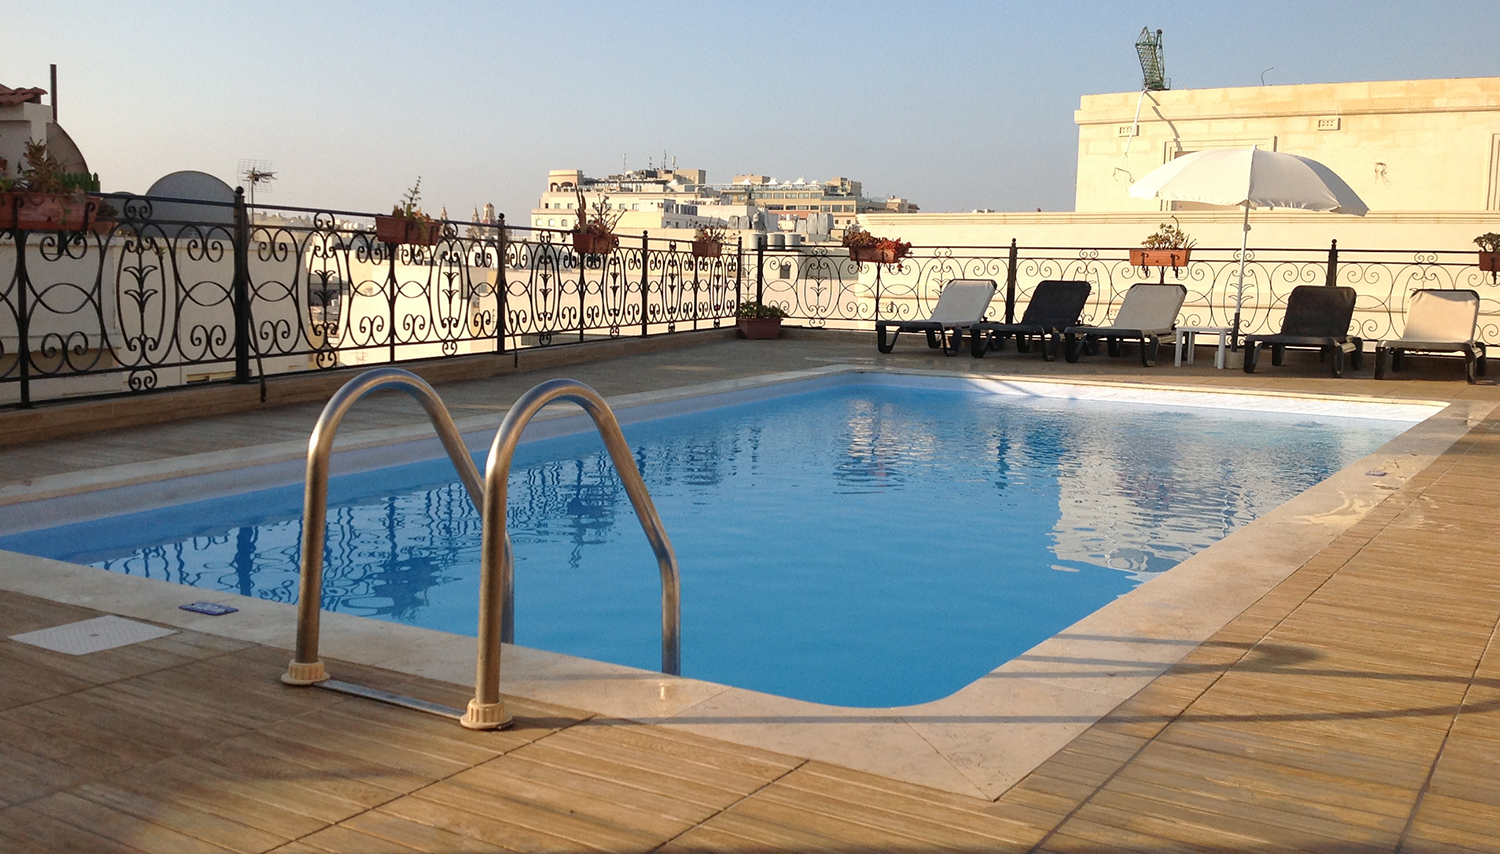 The Windsor hotell (Valletta, Malta)